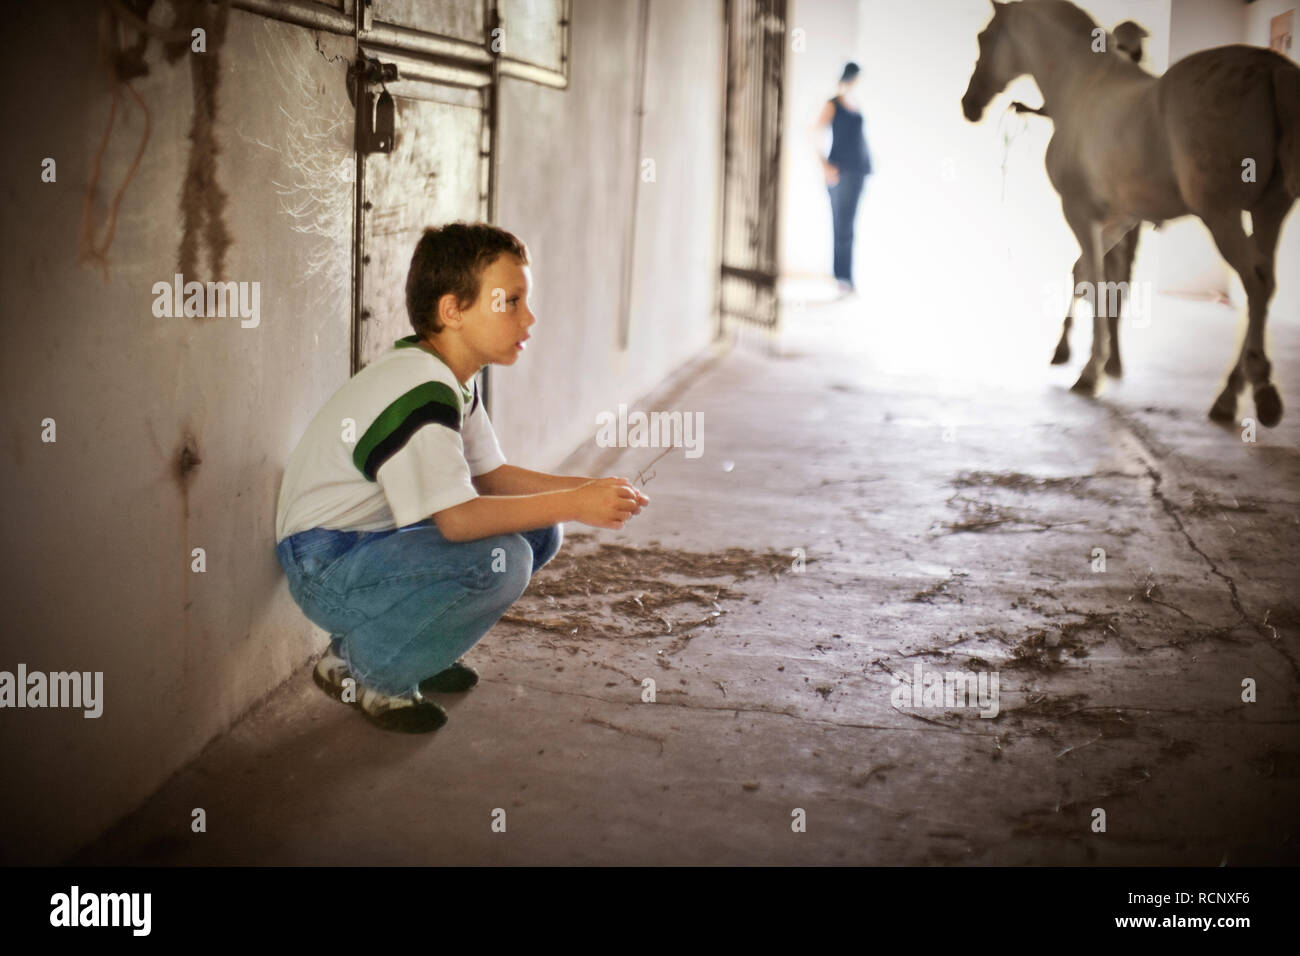 Boy crouched in a horse stable. - Stock Image